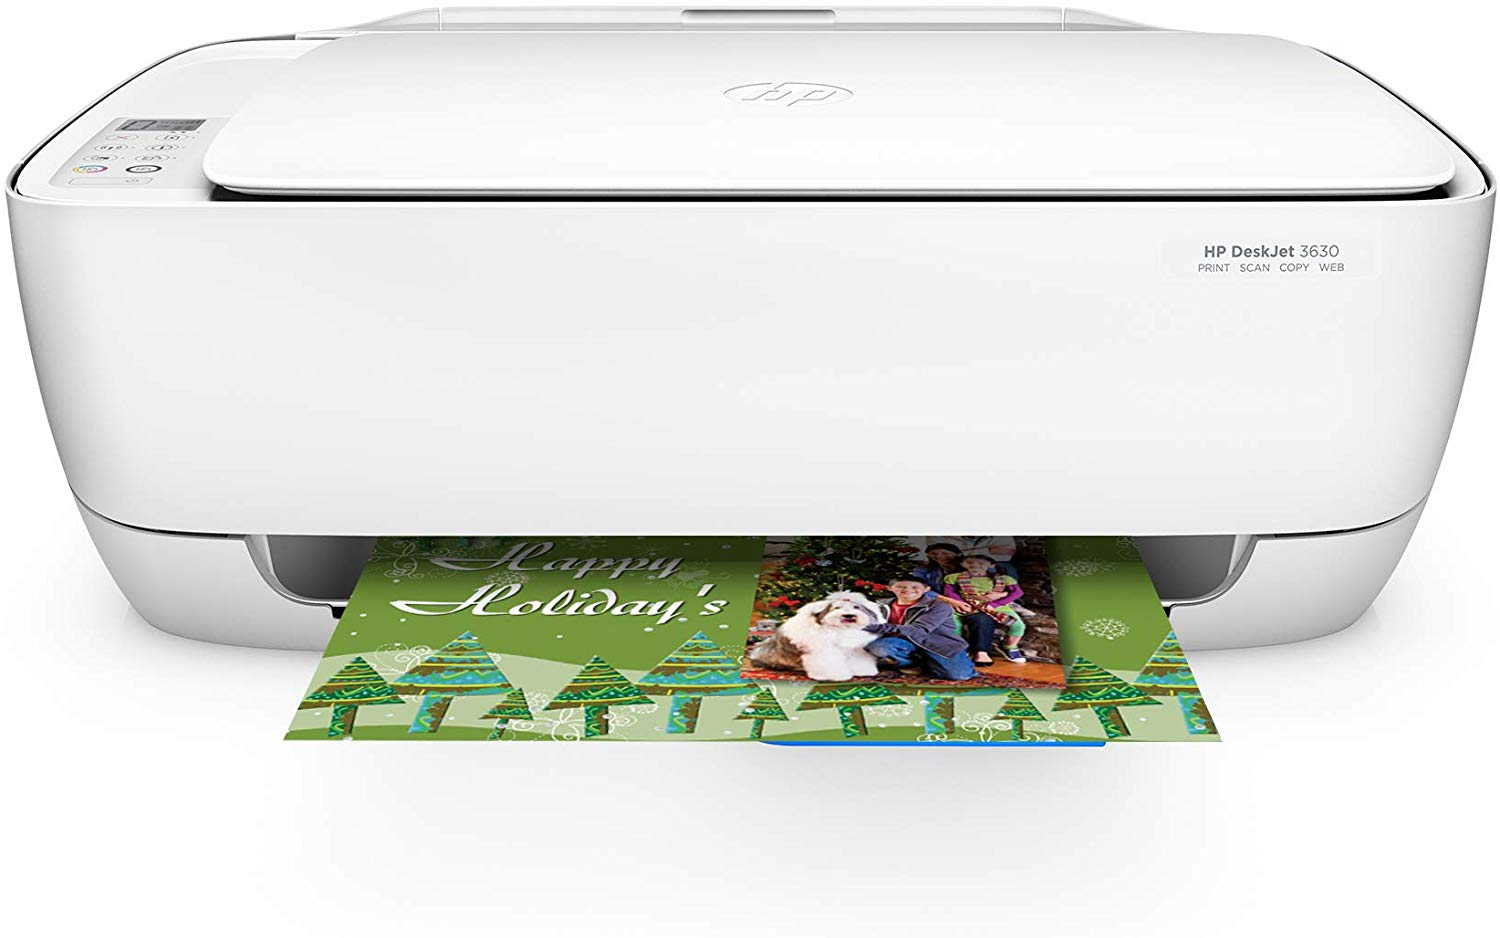 high quality hp deskjet 3630 wireless all-in-one printers (f5s57a)